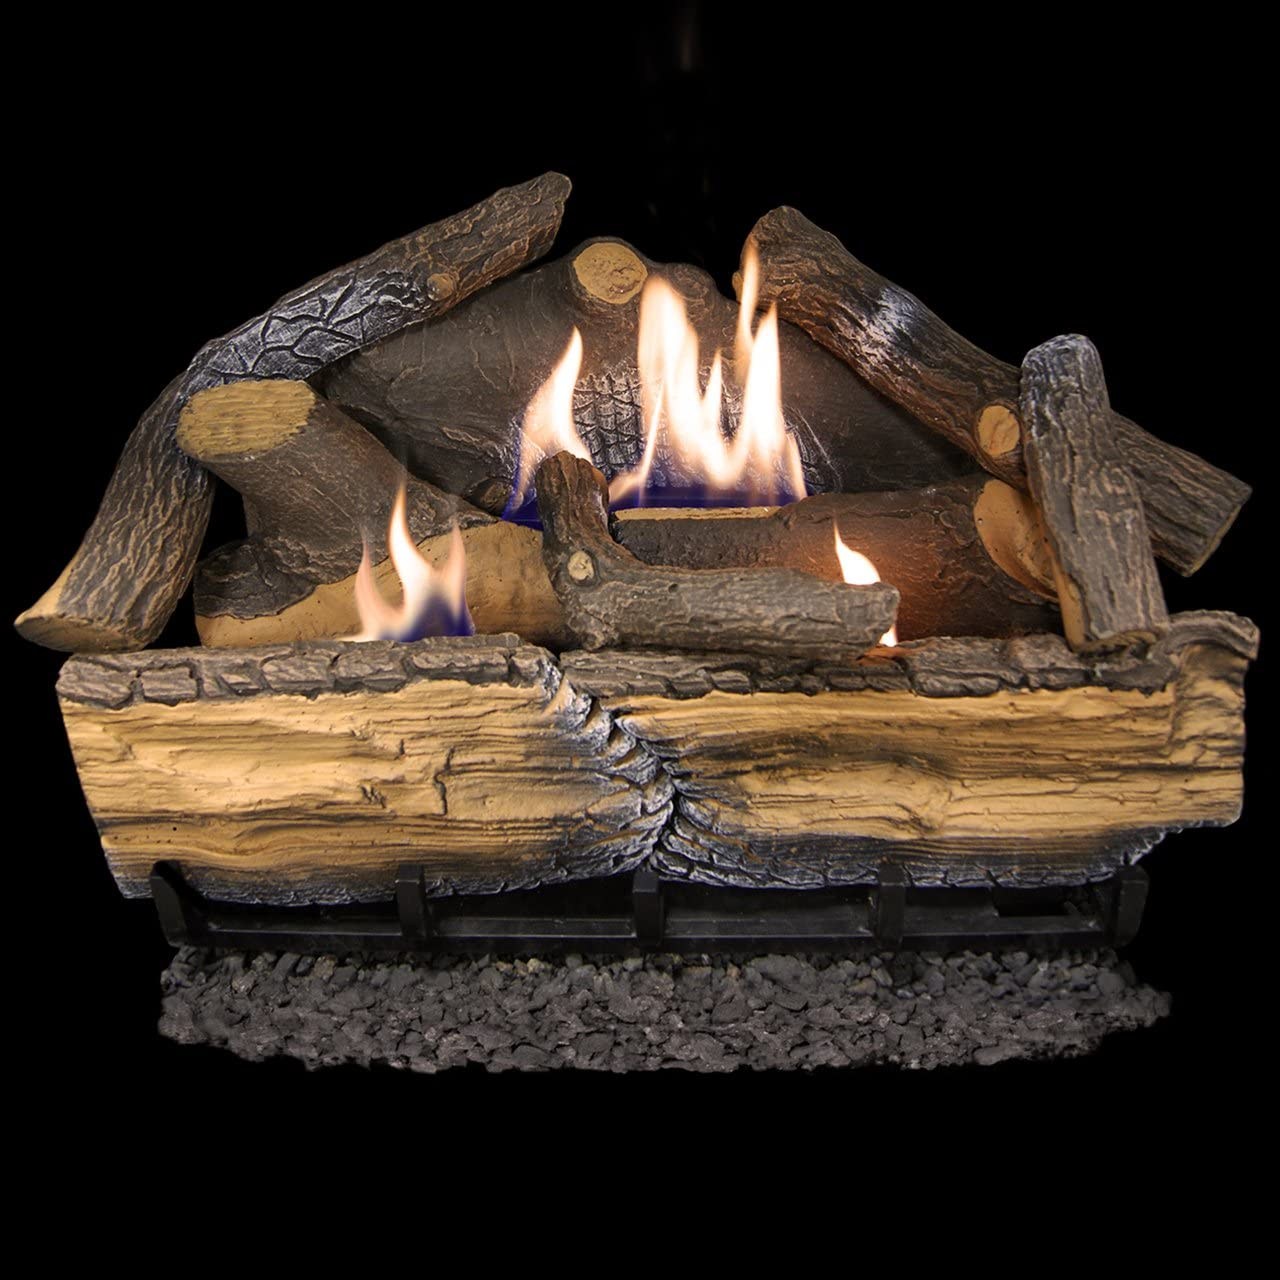 Amazon Com Cedar Ridge Hearth Recon 24 In 32 000 Btu Dual Burner Vent Free Gas Fireplace Logs With Thermostat Home Kitchen